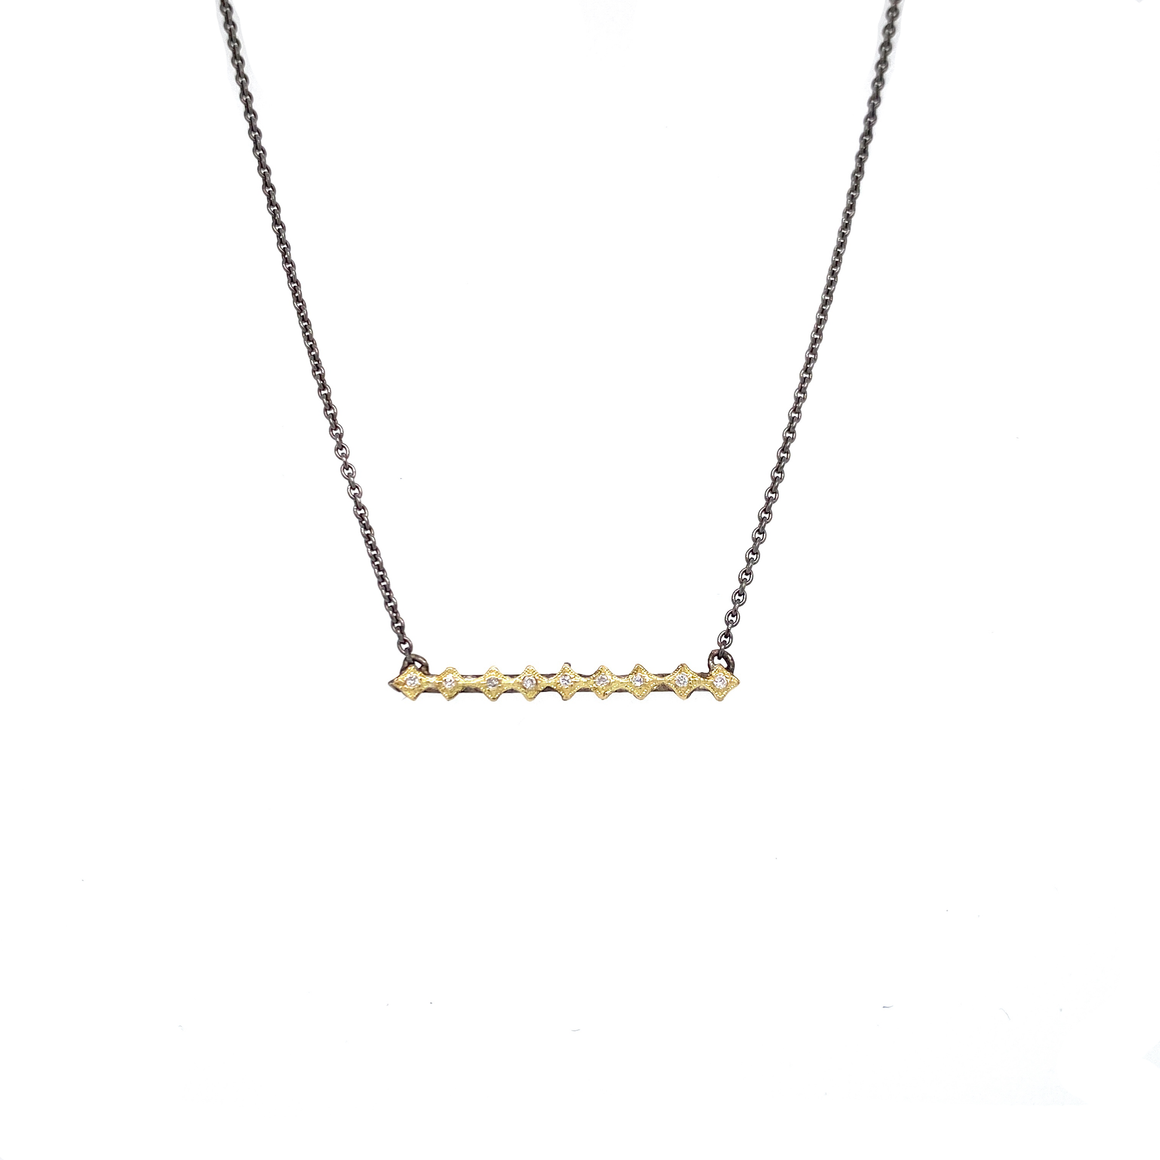 Crivelli Bar Necklace - Lesley Ann Jewels